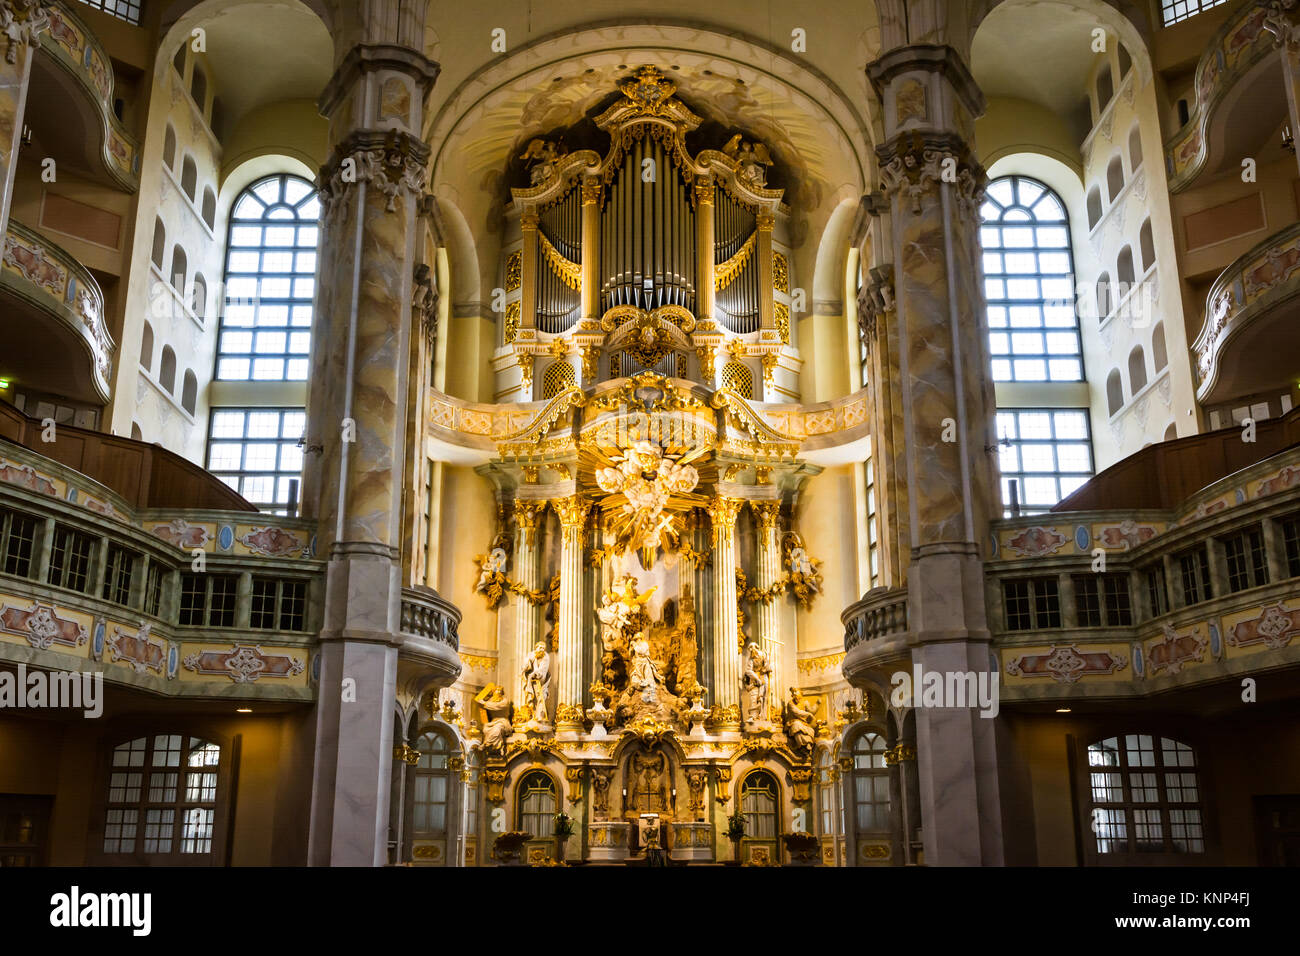 Dresden Frauenkirche Interior Architecture Ornate Decoration Religion Altar Worship Area - Stock Image